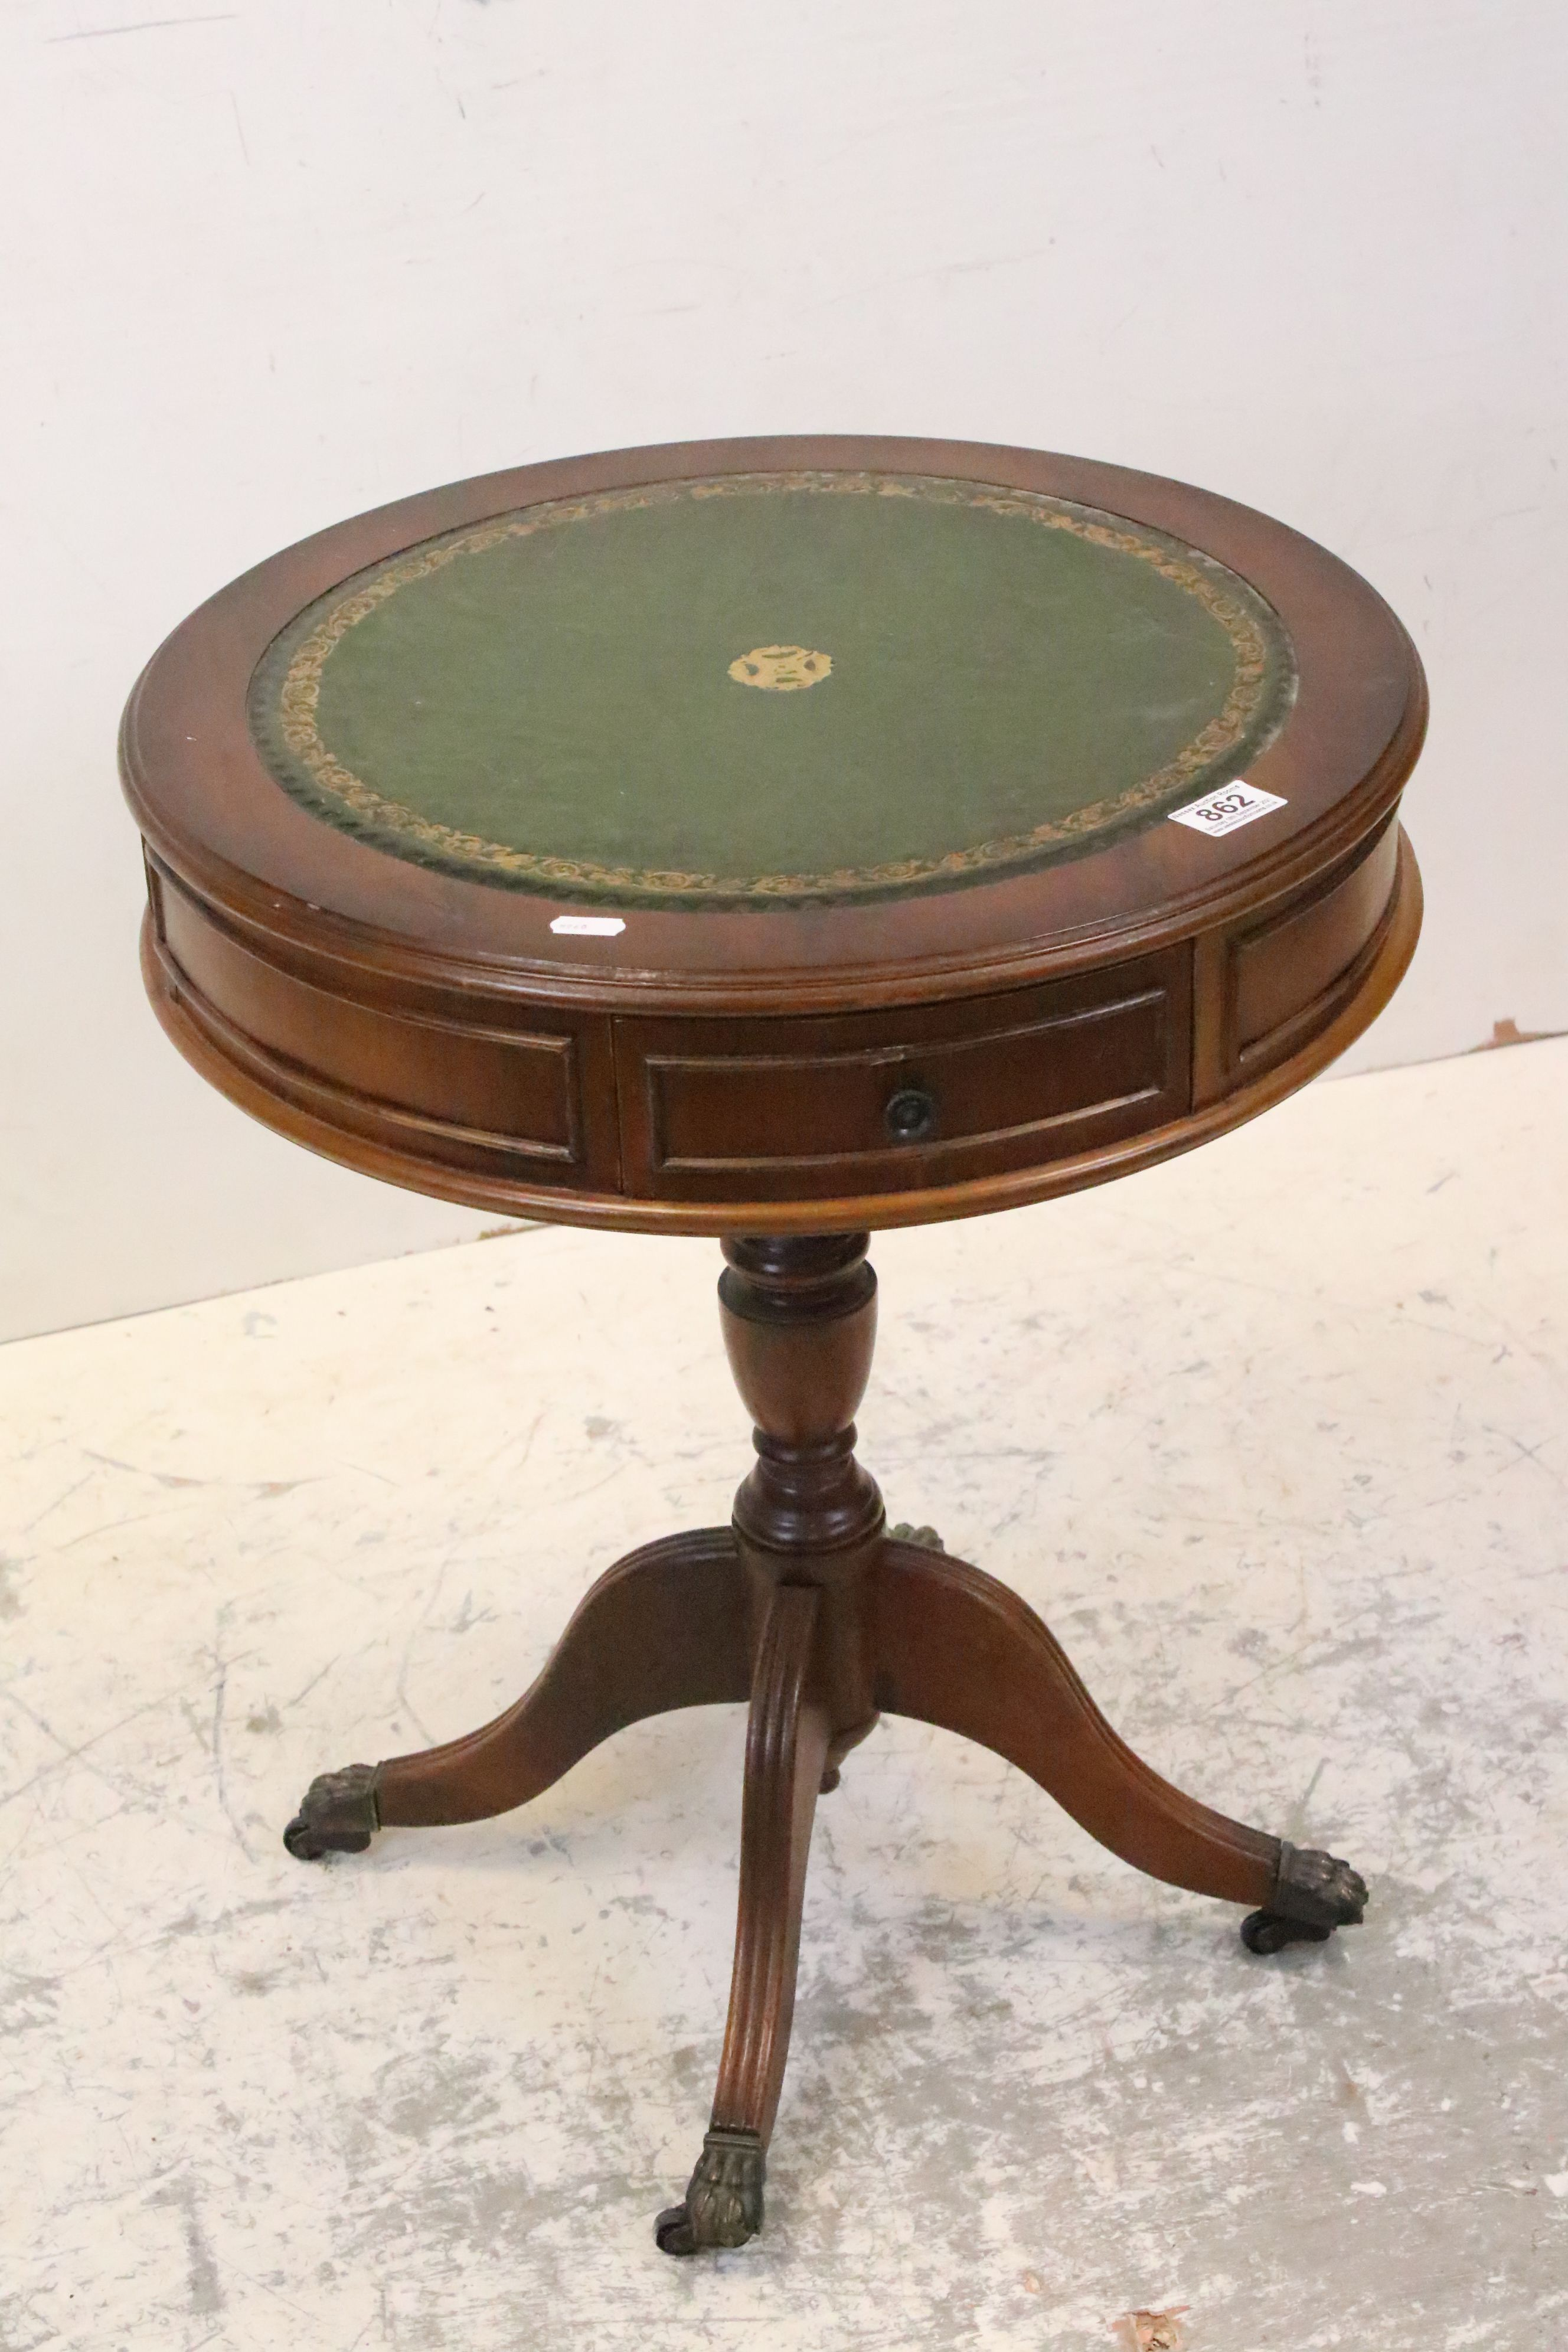 Reproduction Drum Table with Green Leather Inset Top, 49cms wide x 62cms high